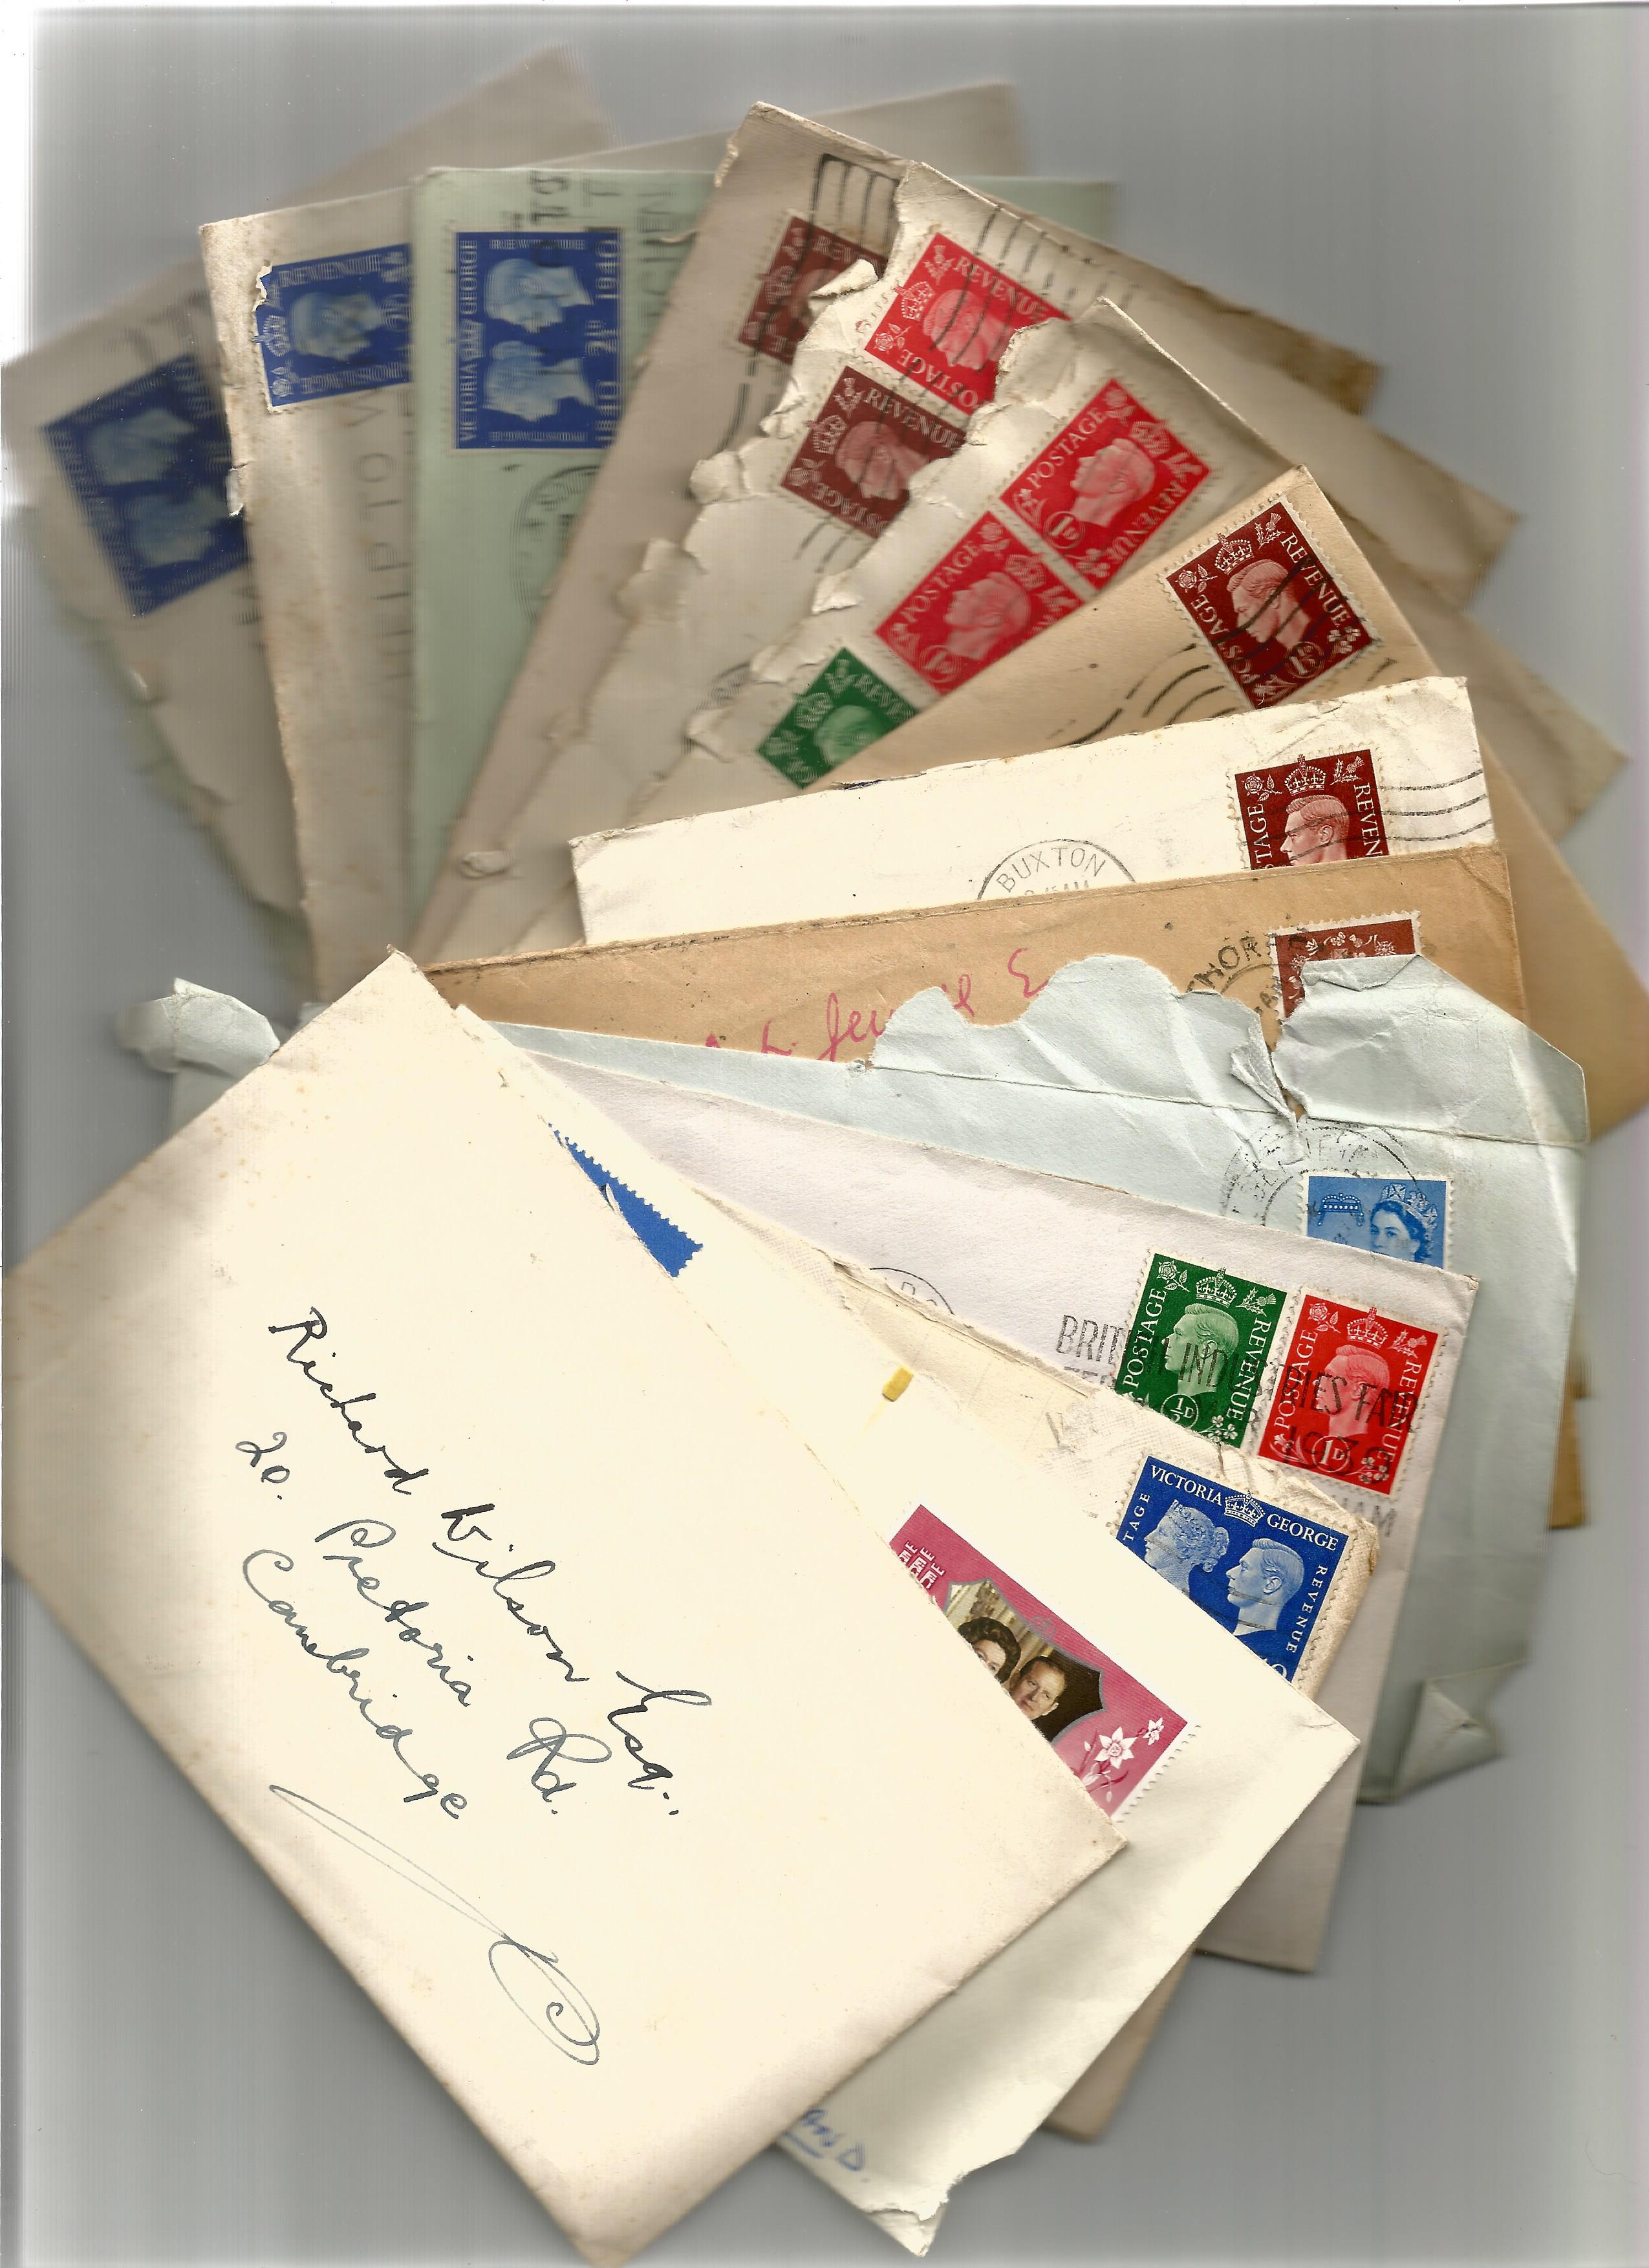 1940s 1960s Personal Correspondence Collection with good used Stamps and possible Interesting - Image 2 of 4